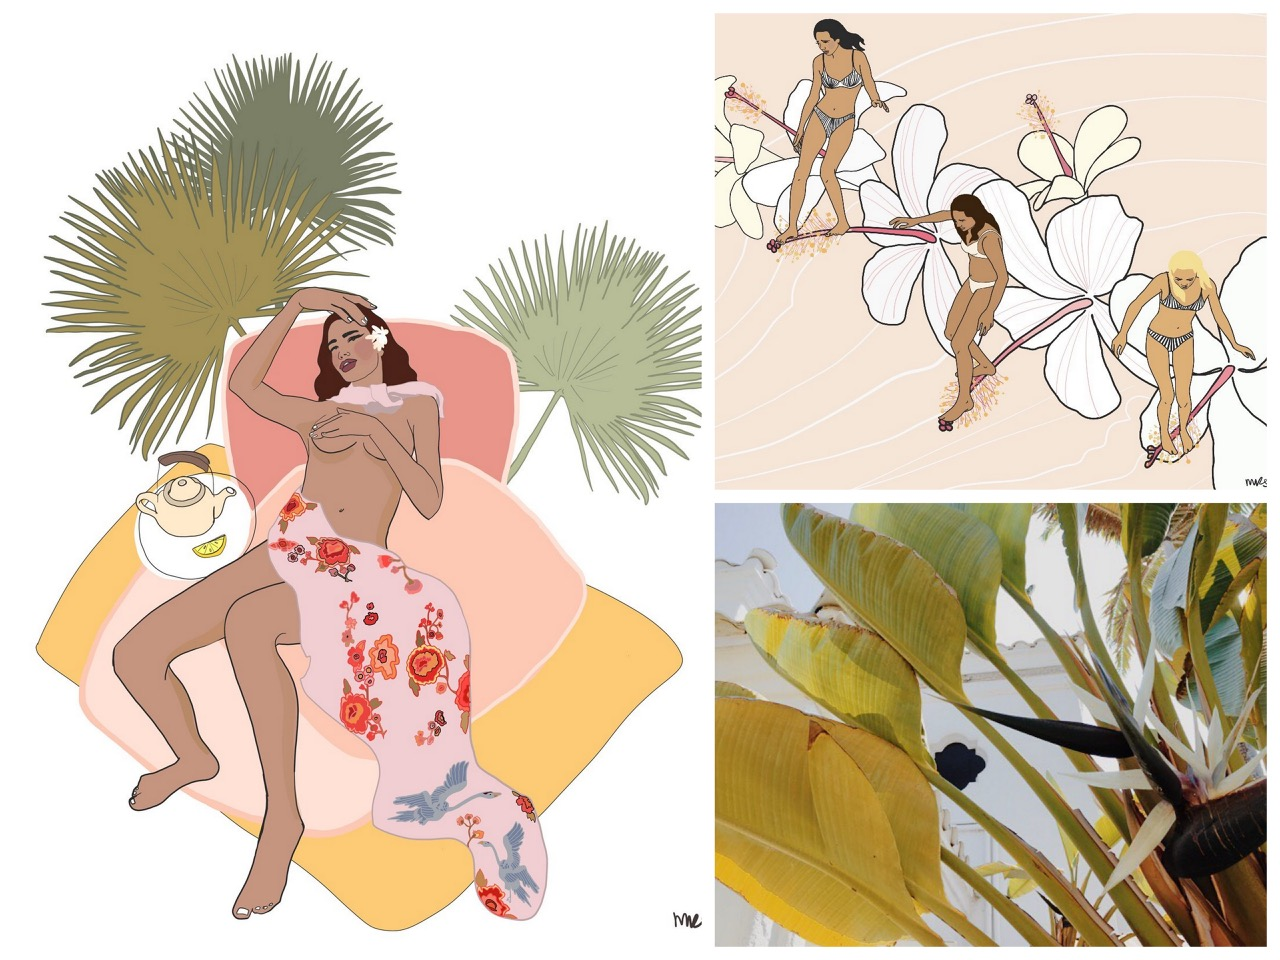 maggie rice,margaret rice,illustratrice,illustration,drawing,painting,artiste,hawaii,tropical flowers,surfer girl,surfeuse,fille de sales,island girl